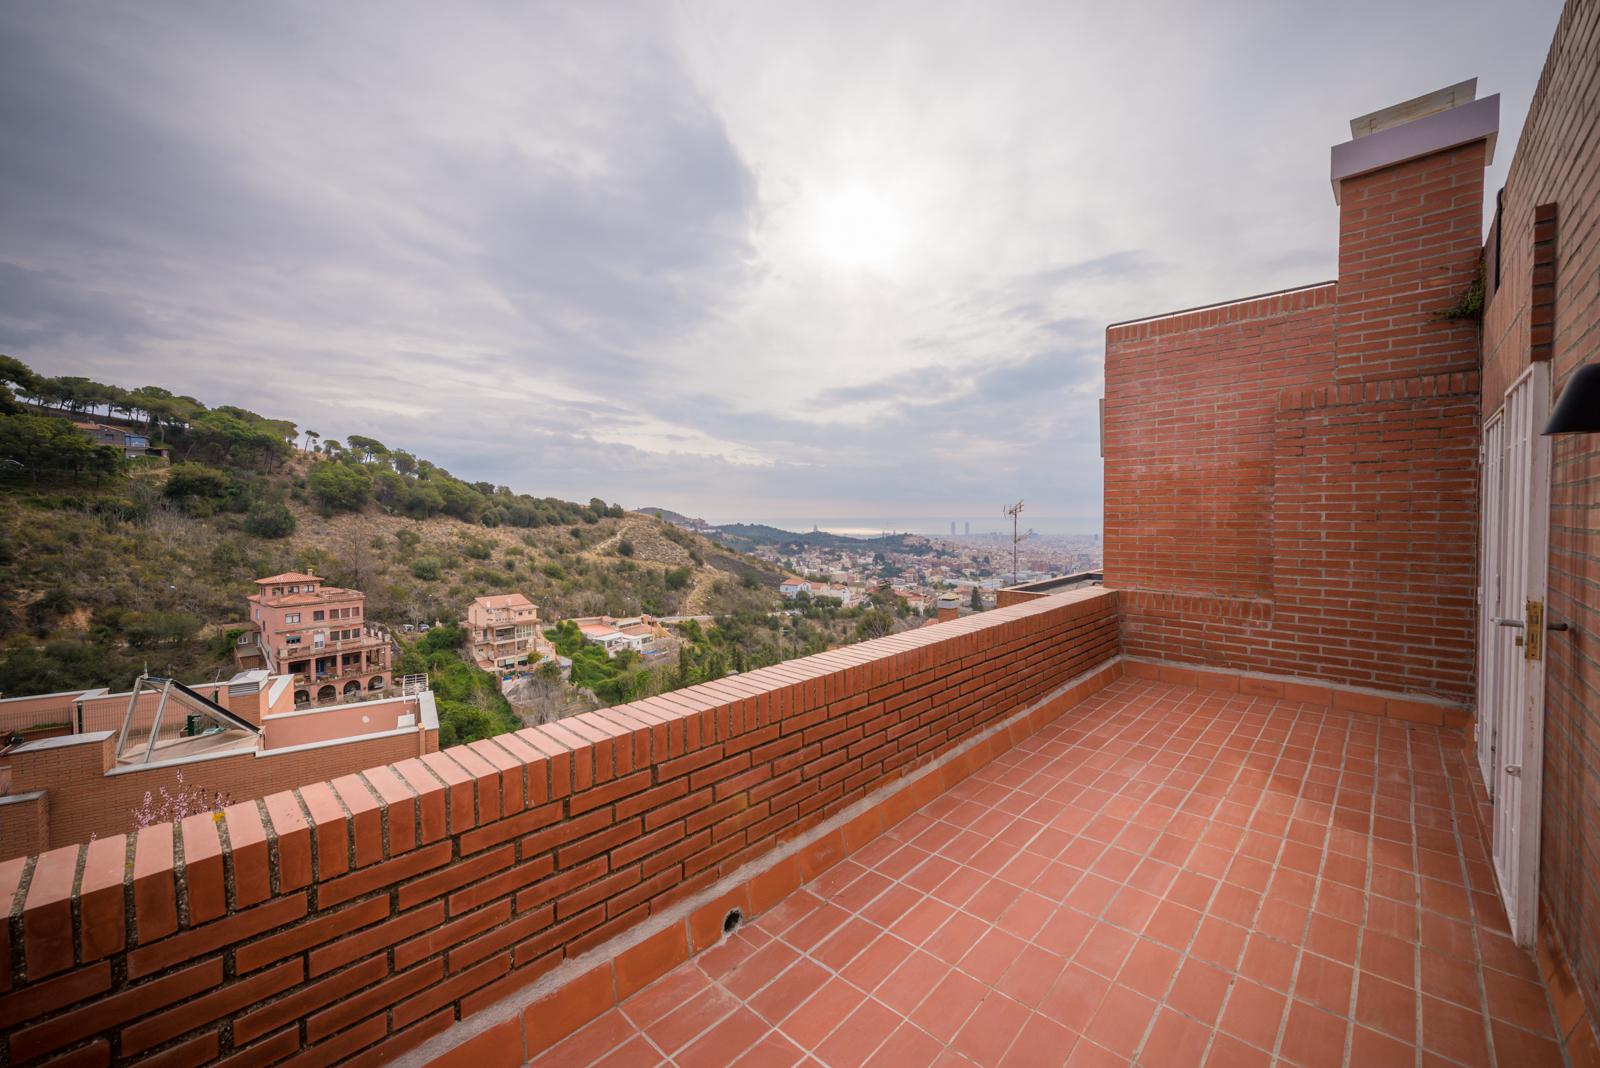 74341 Townhouse for sale in Gràcia, Vallcarca i els Penitents 20